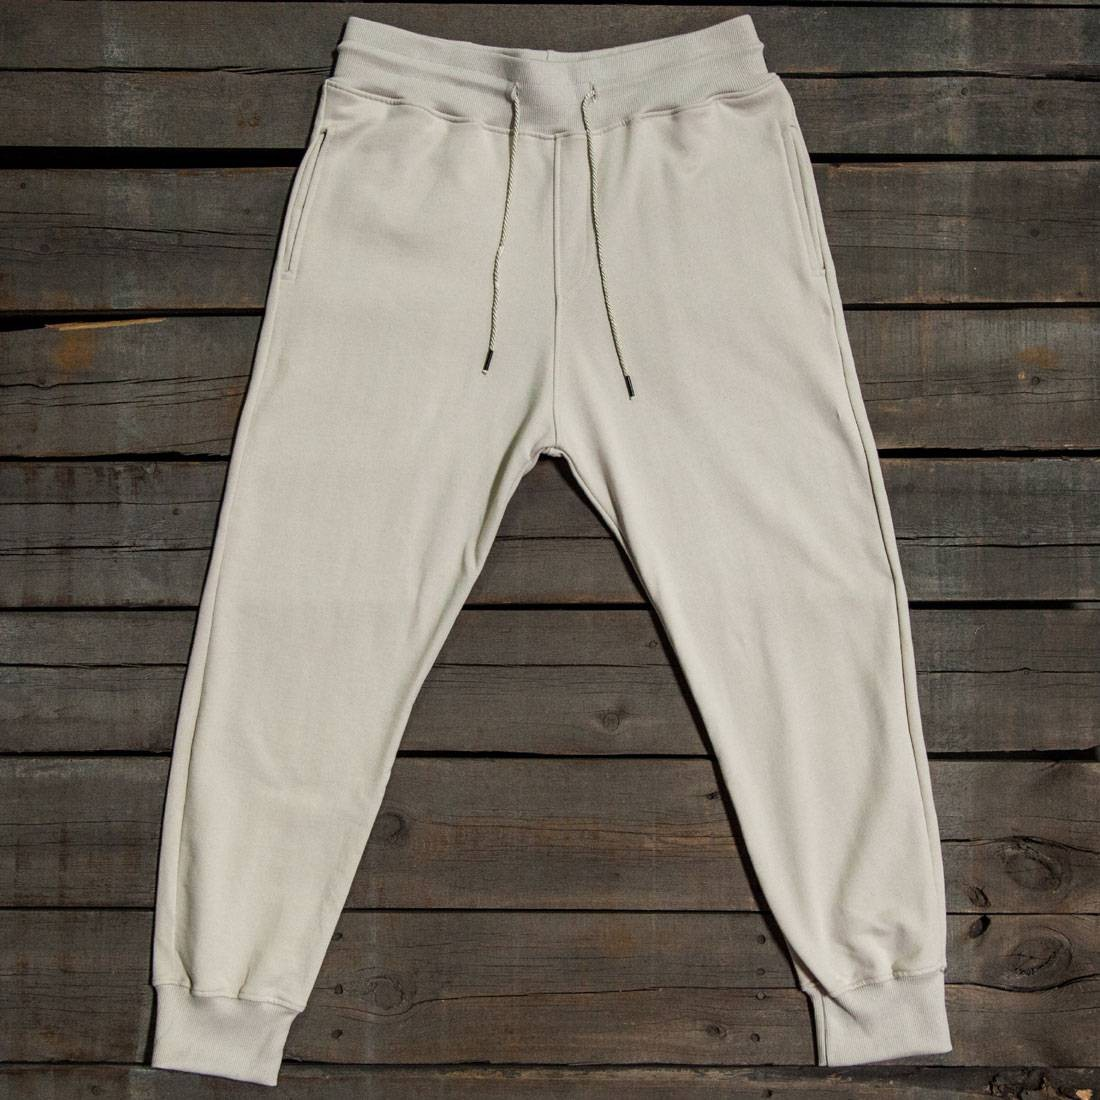 BAIT Men Premium Sweatpants - Made In Los Angeles (gray / turtledove)